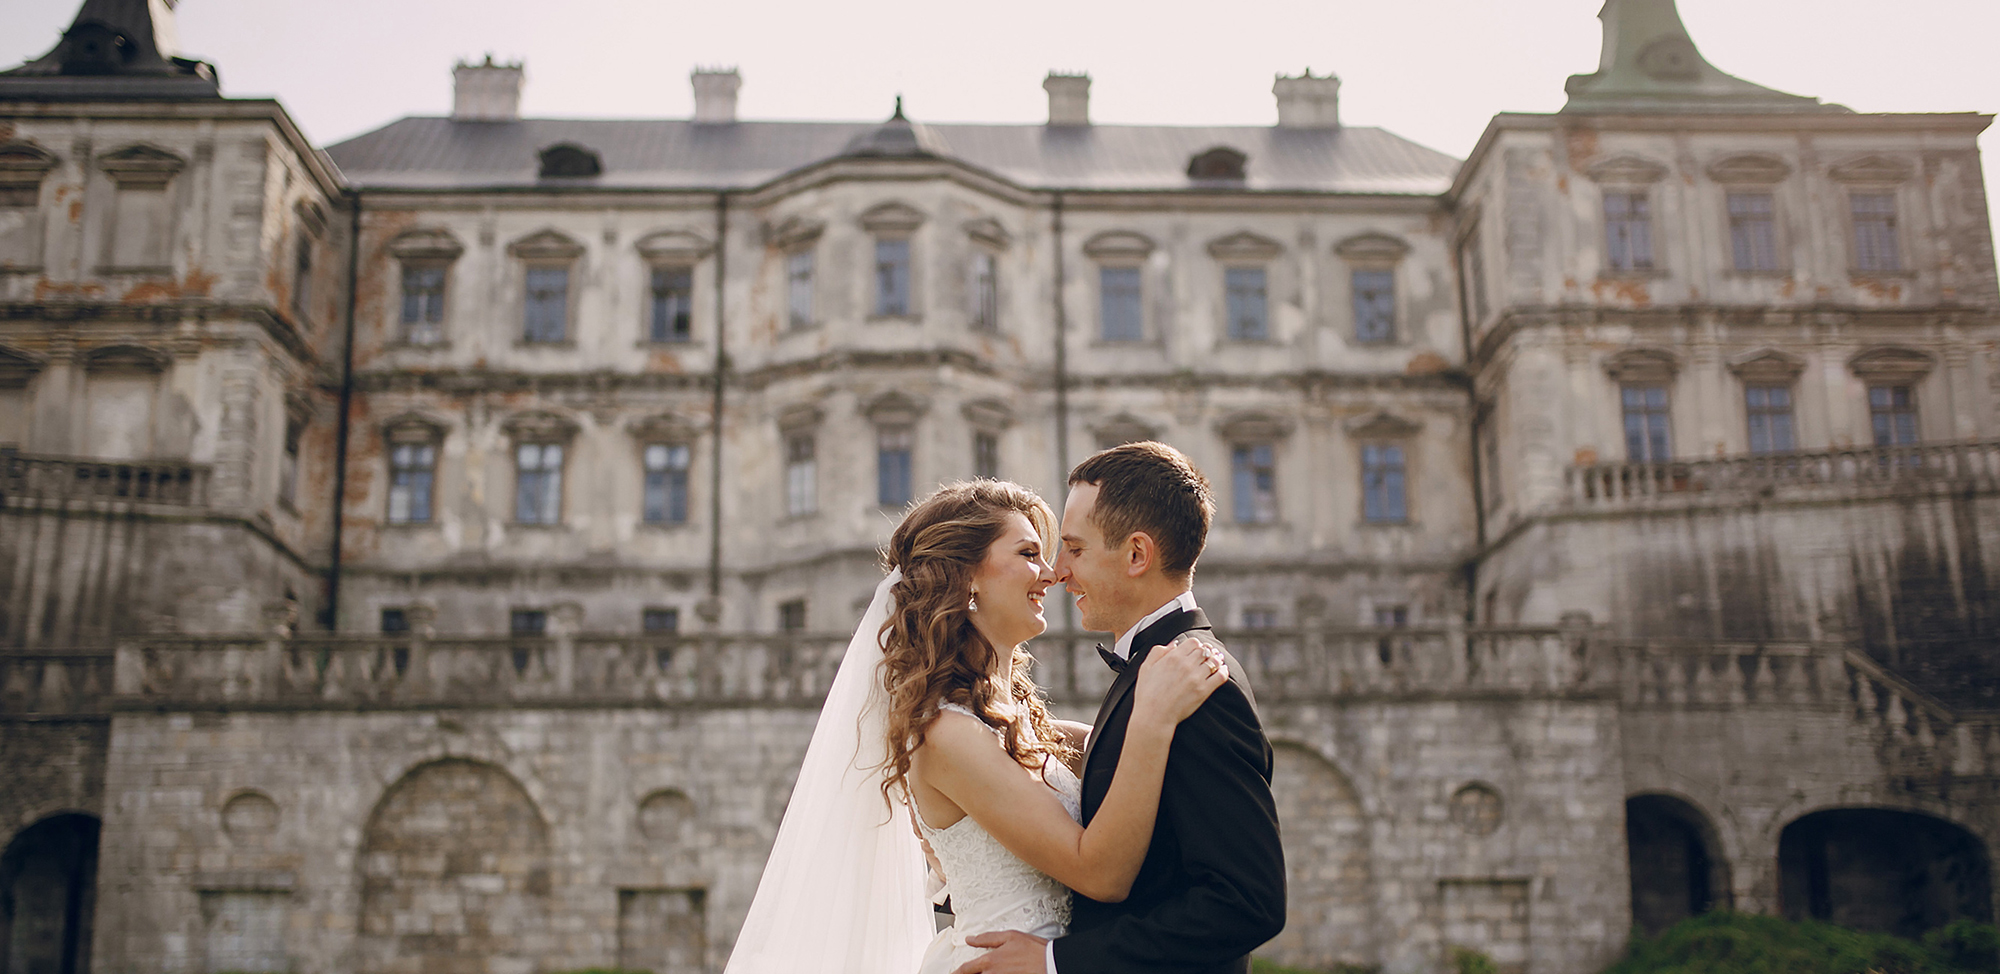 Wedding ceremonies in Bristol & Bath